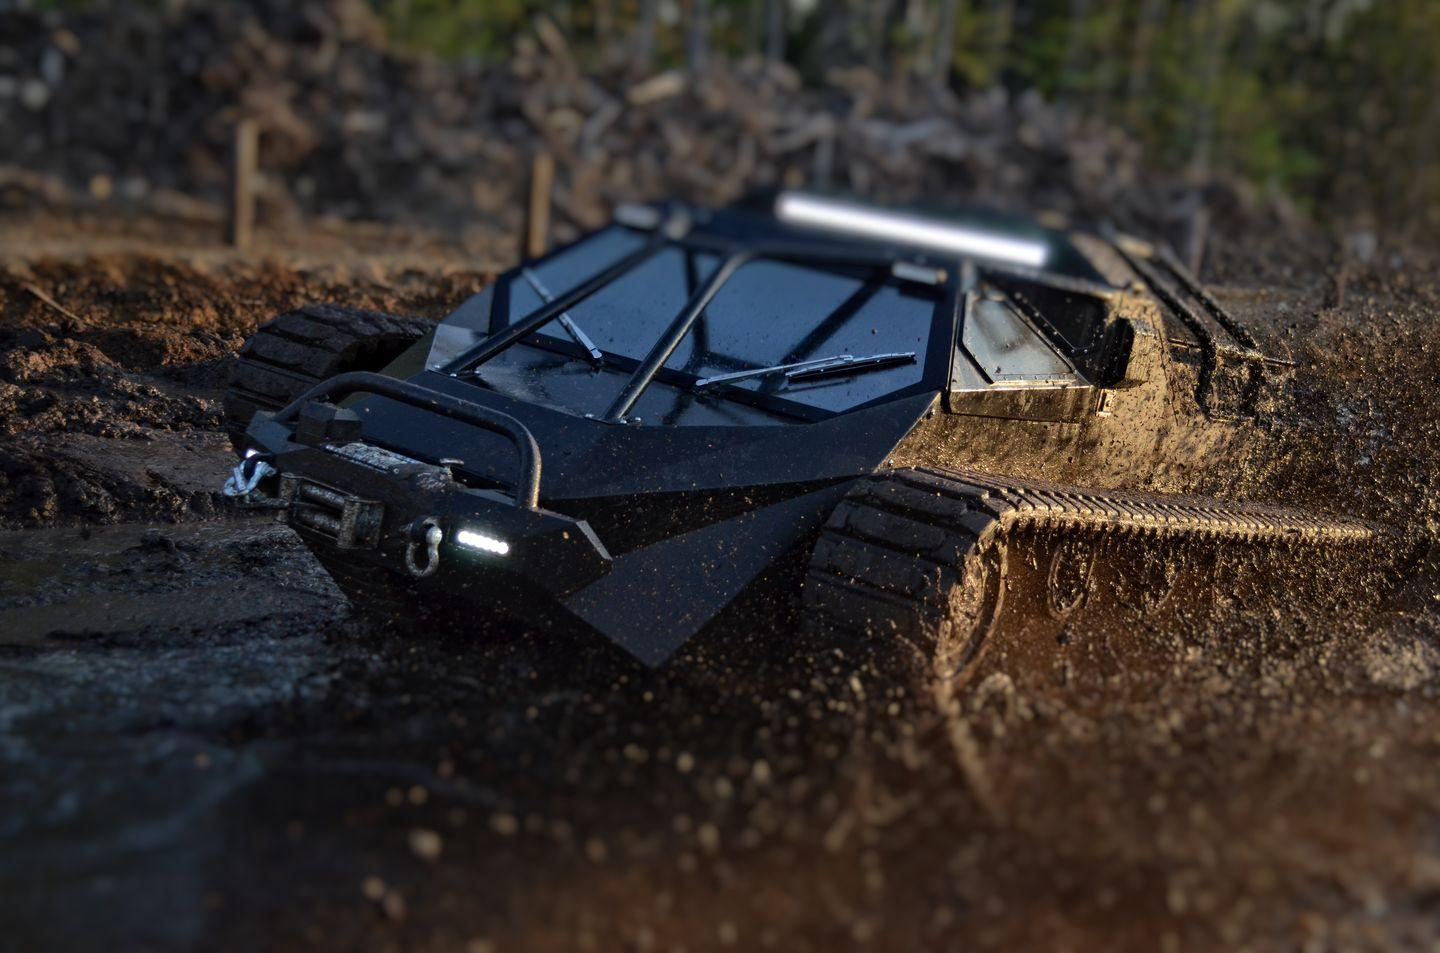 Ripsaw EV2 High-Speed Personal Tracked Vehicle (Videos)